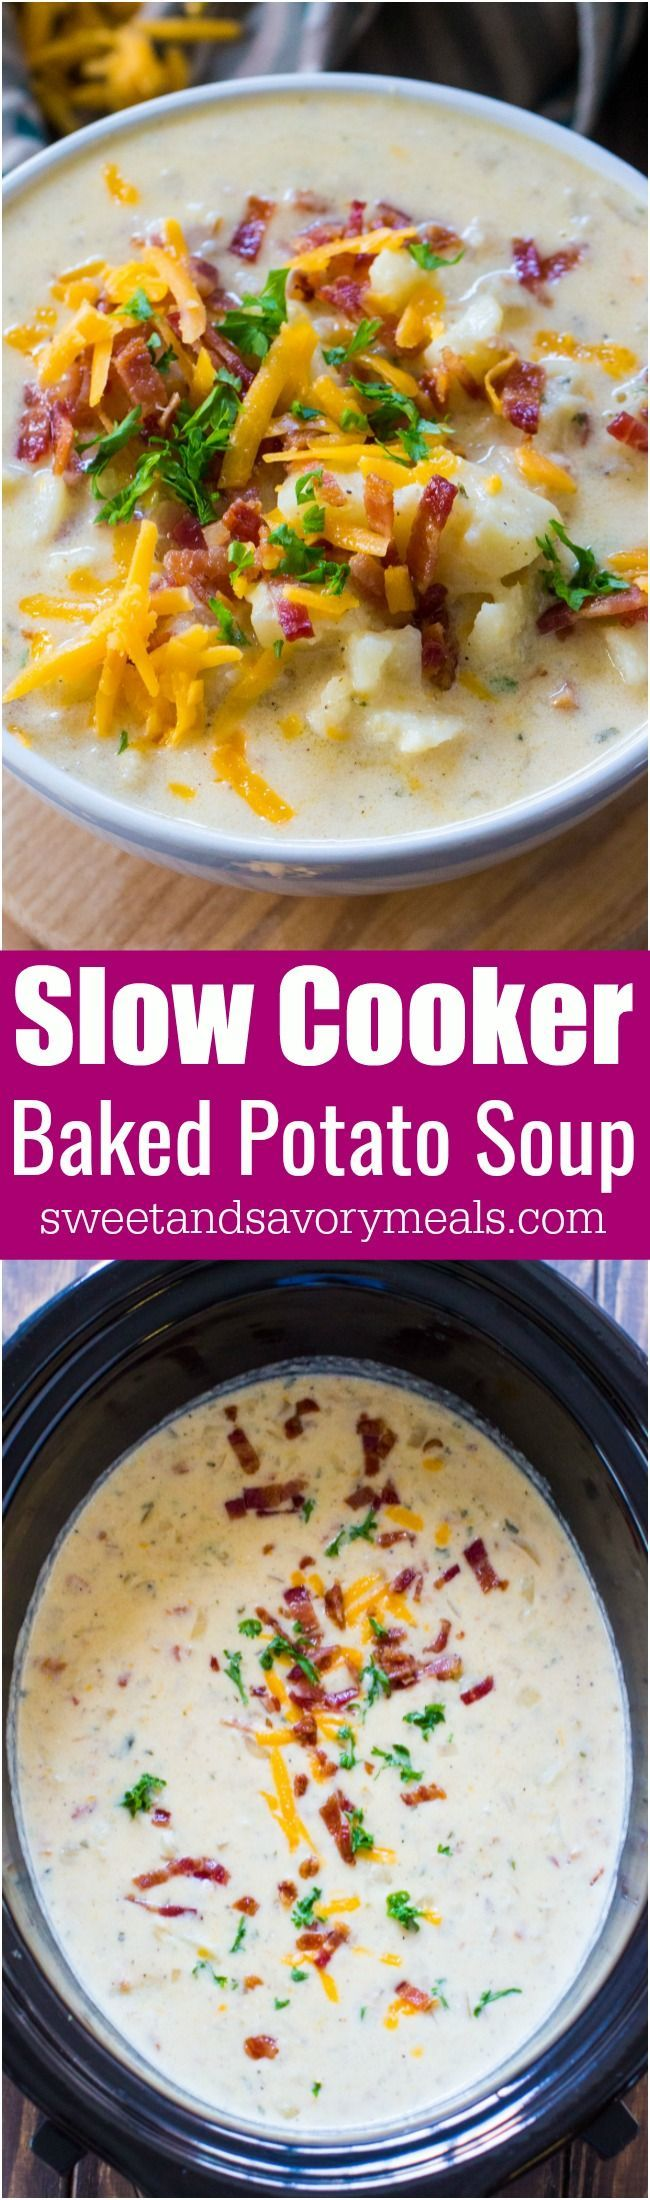 Creamiest Slow Cooker Baked Potato Soup is comforting, budget friendly and also very easy to make! Perfect for a weeknight meal. #slowcooker #slowcookerrecipes #soup #souprecipes #potato